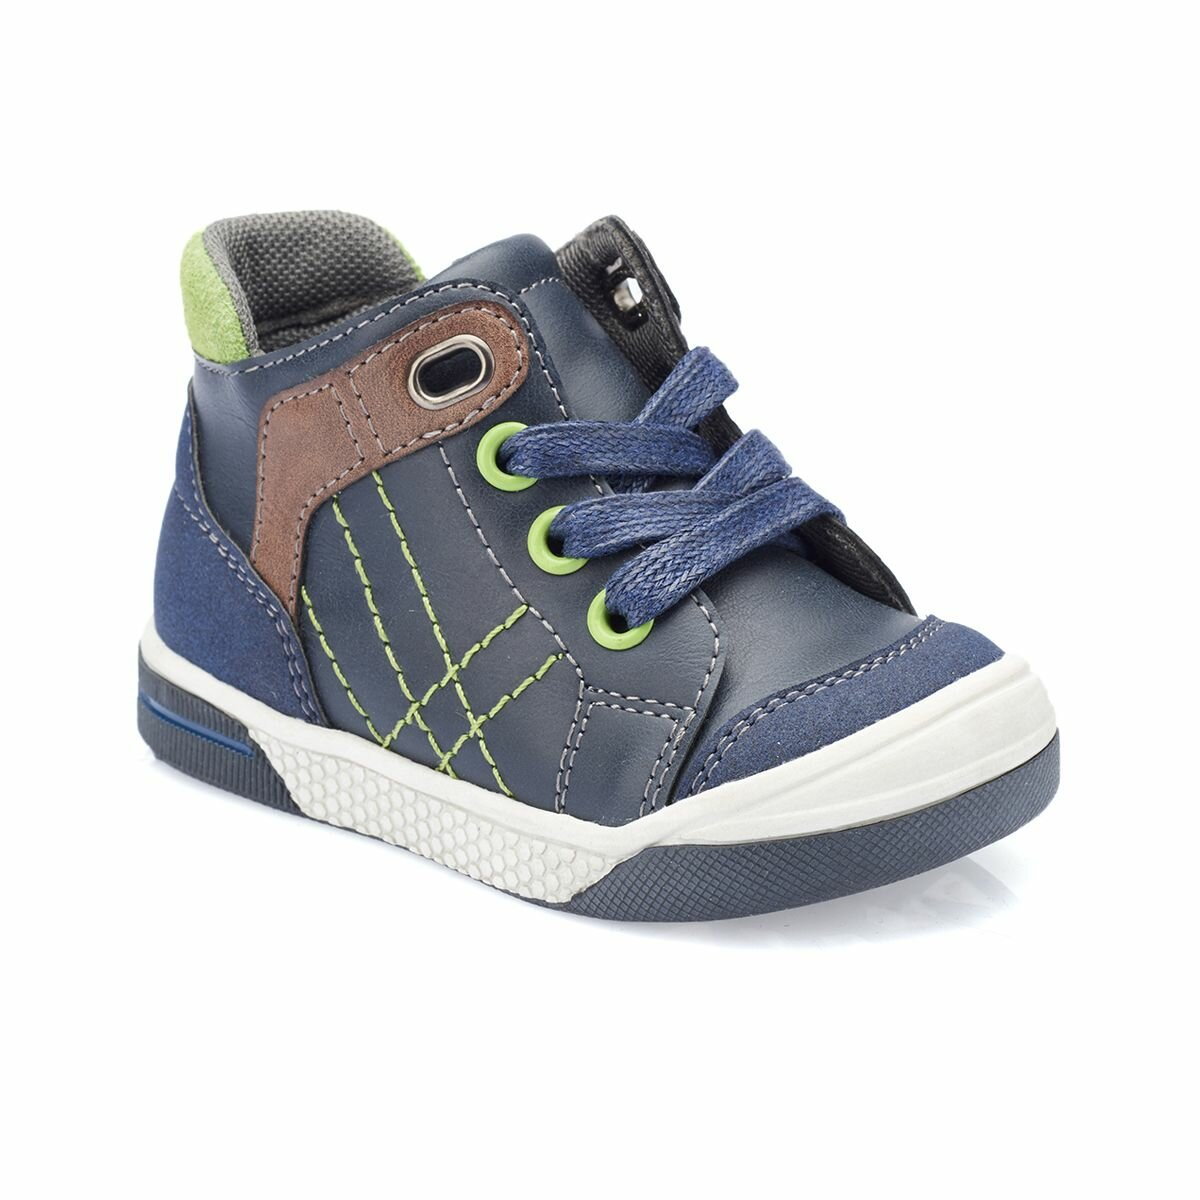 FLO 82.510792.I Navy Blue Male Child Boots Polaris